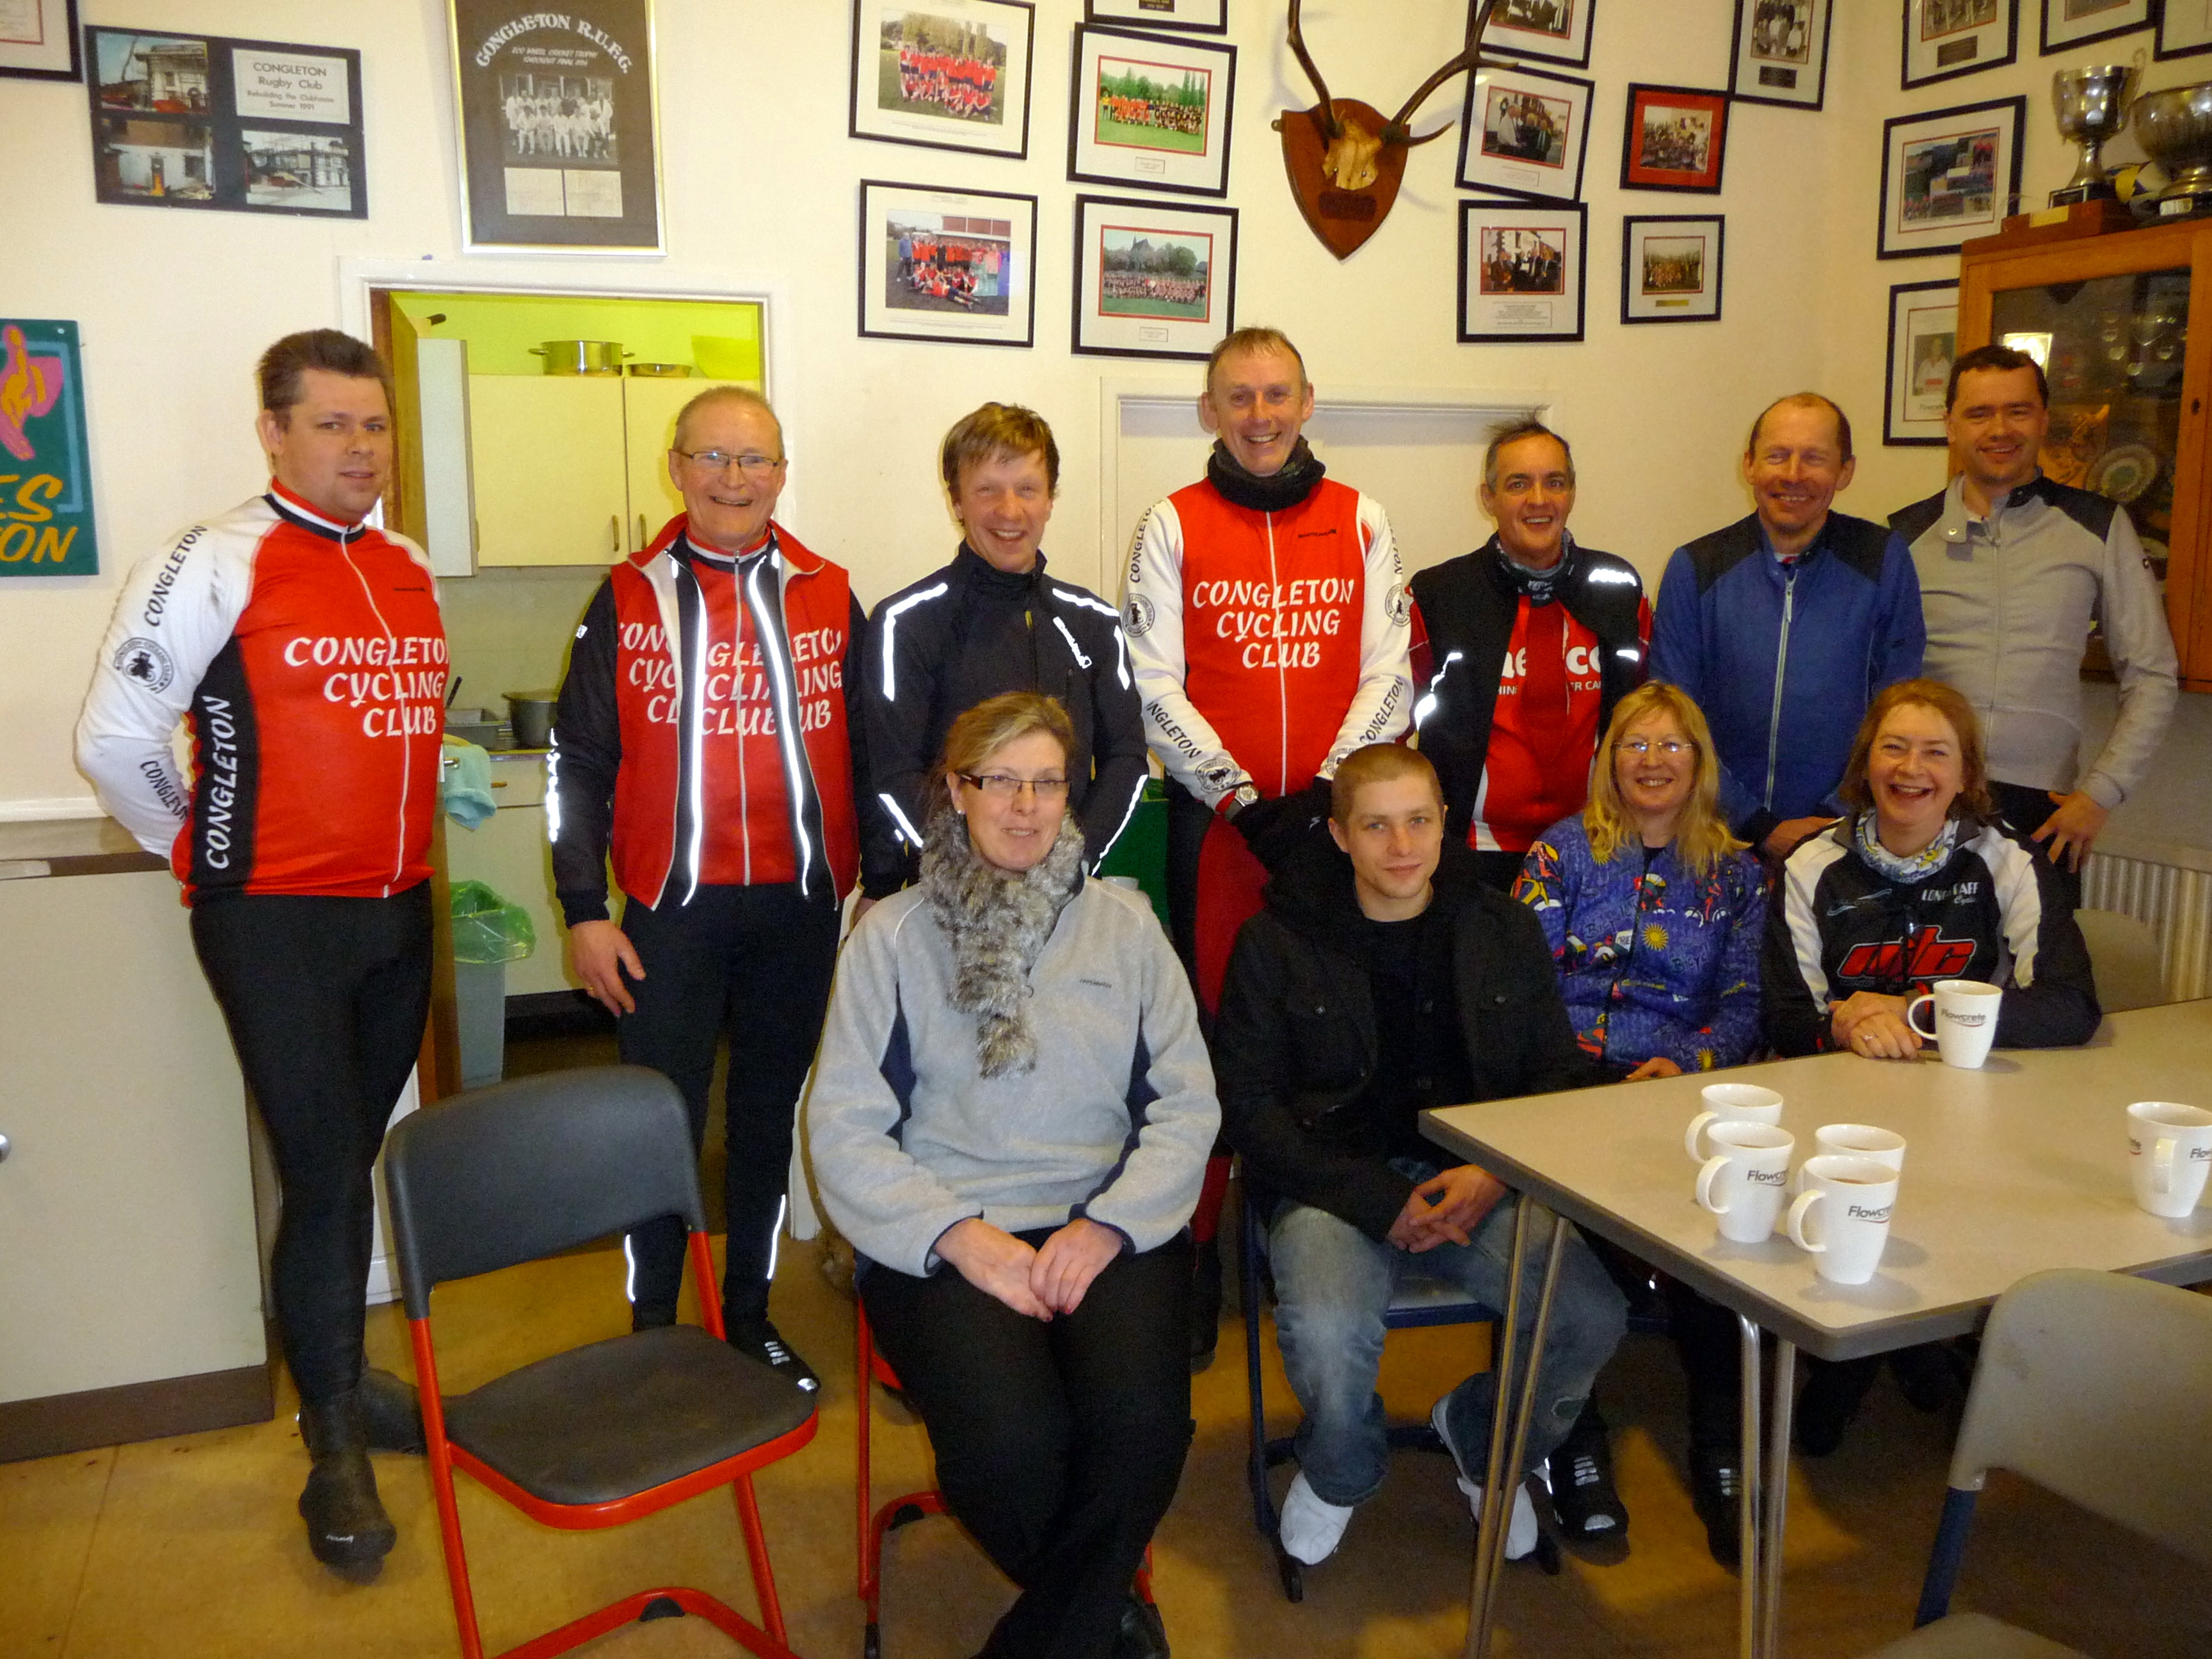 Members at Finish of 100-mile Reliability